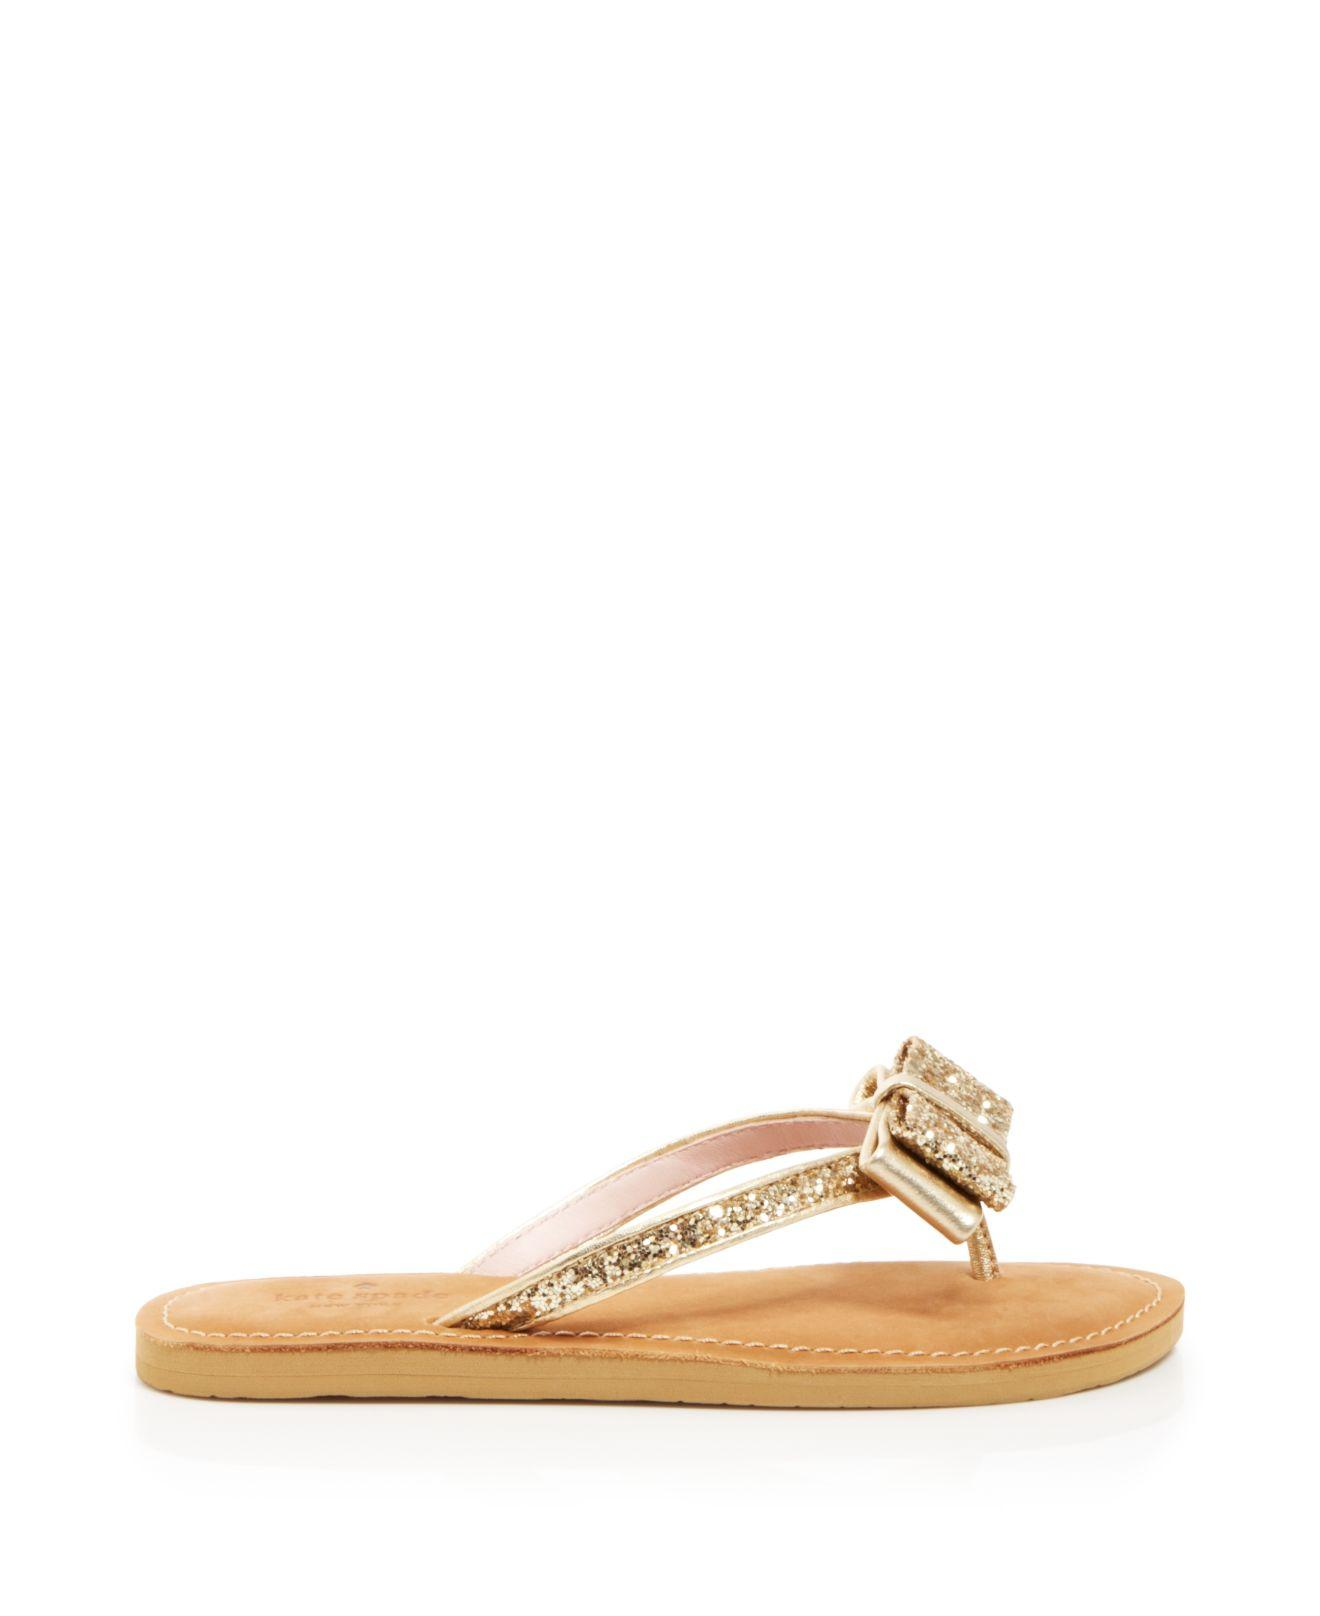 Lyst Kate Spade Flat Thong Sandals Icarda Glitter In